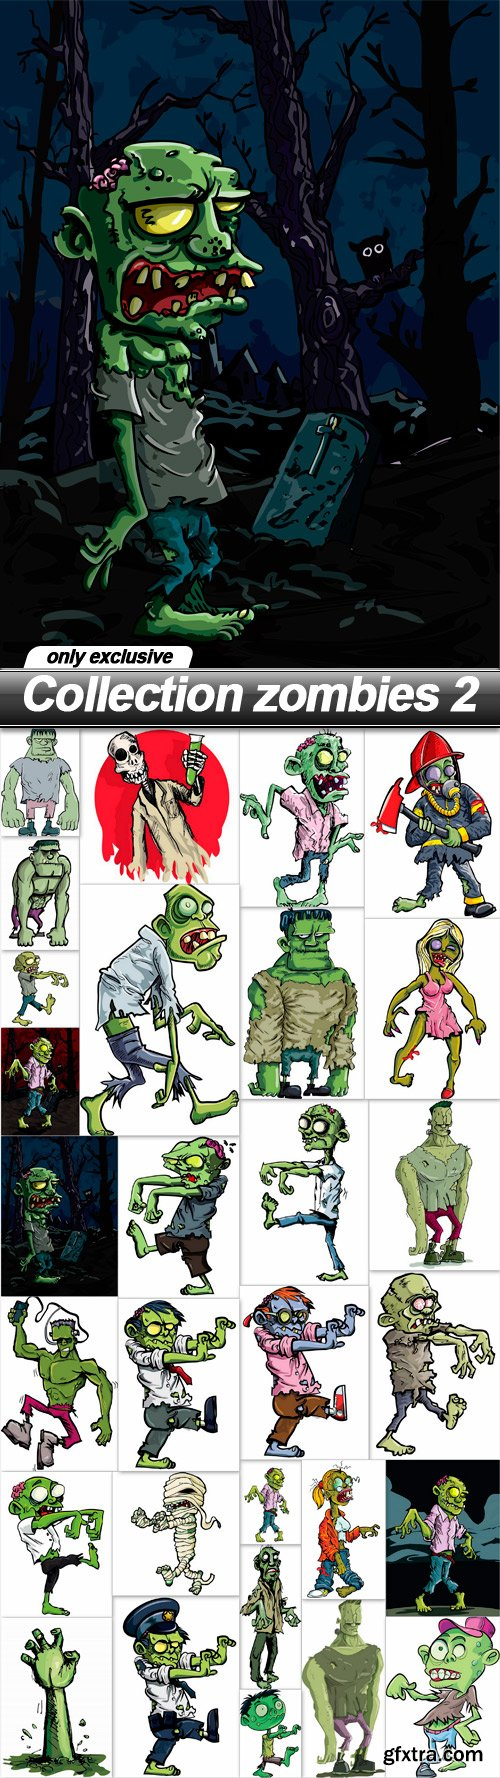 Collection zombies 2 - 29 EPS